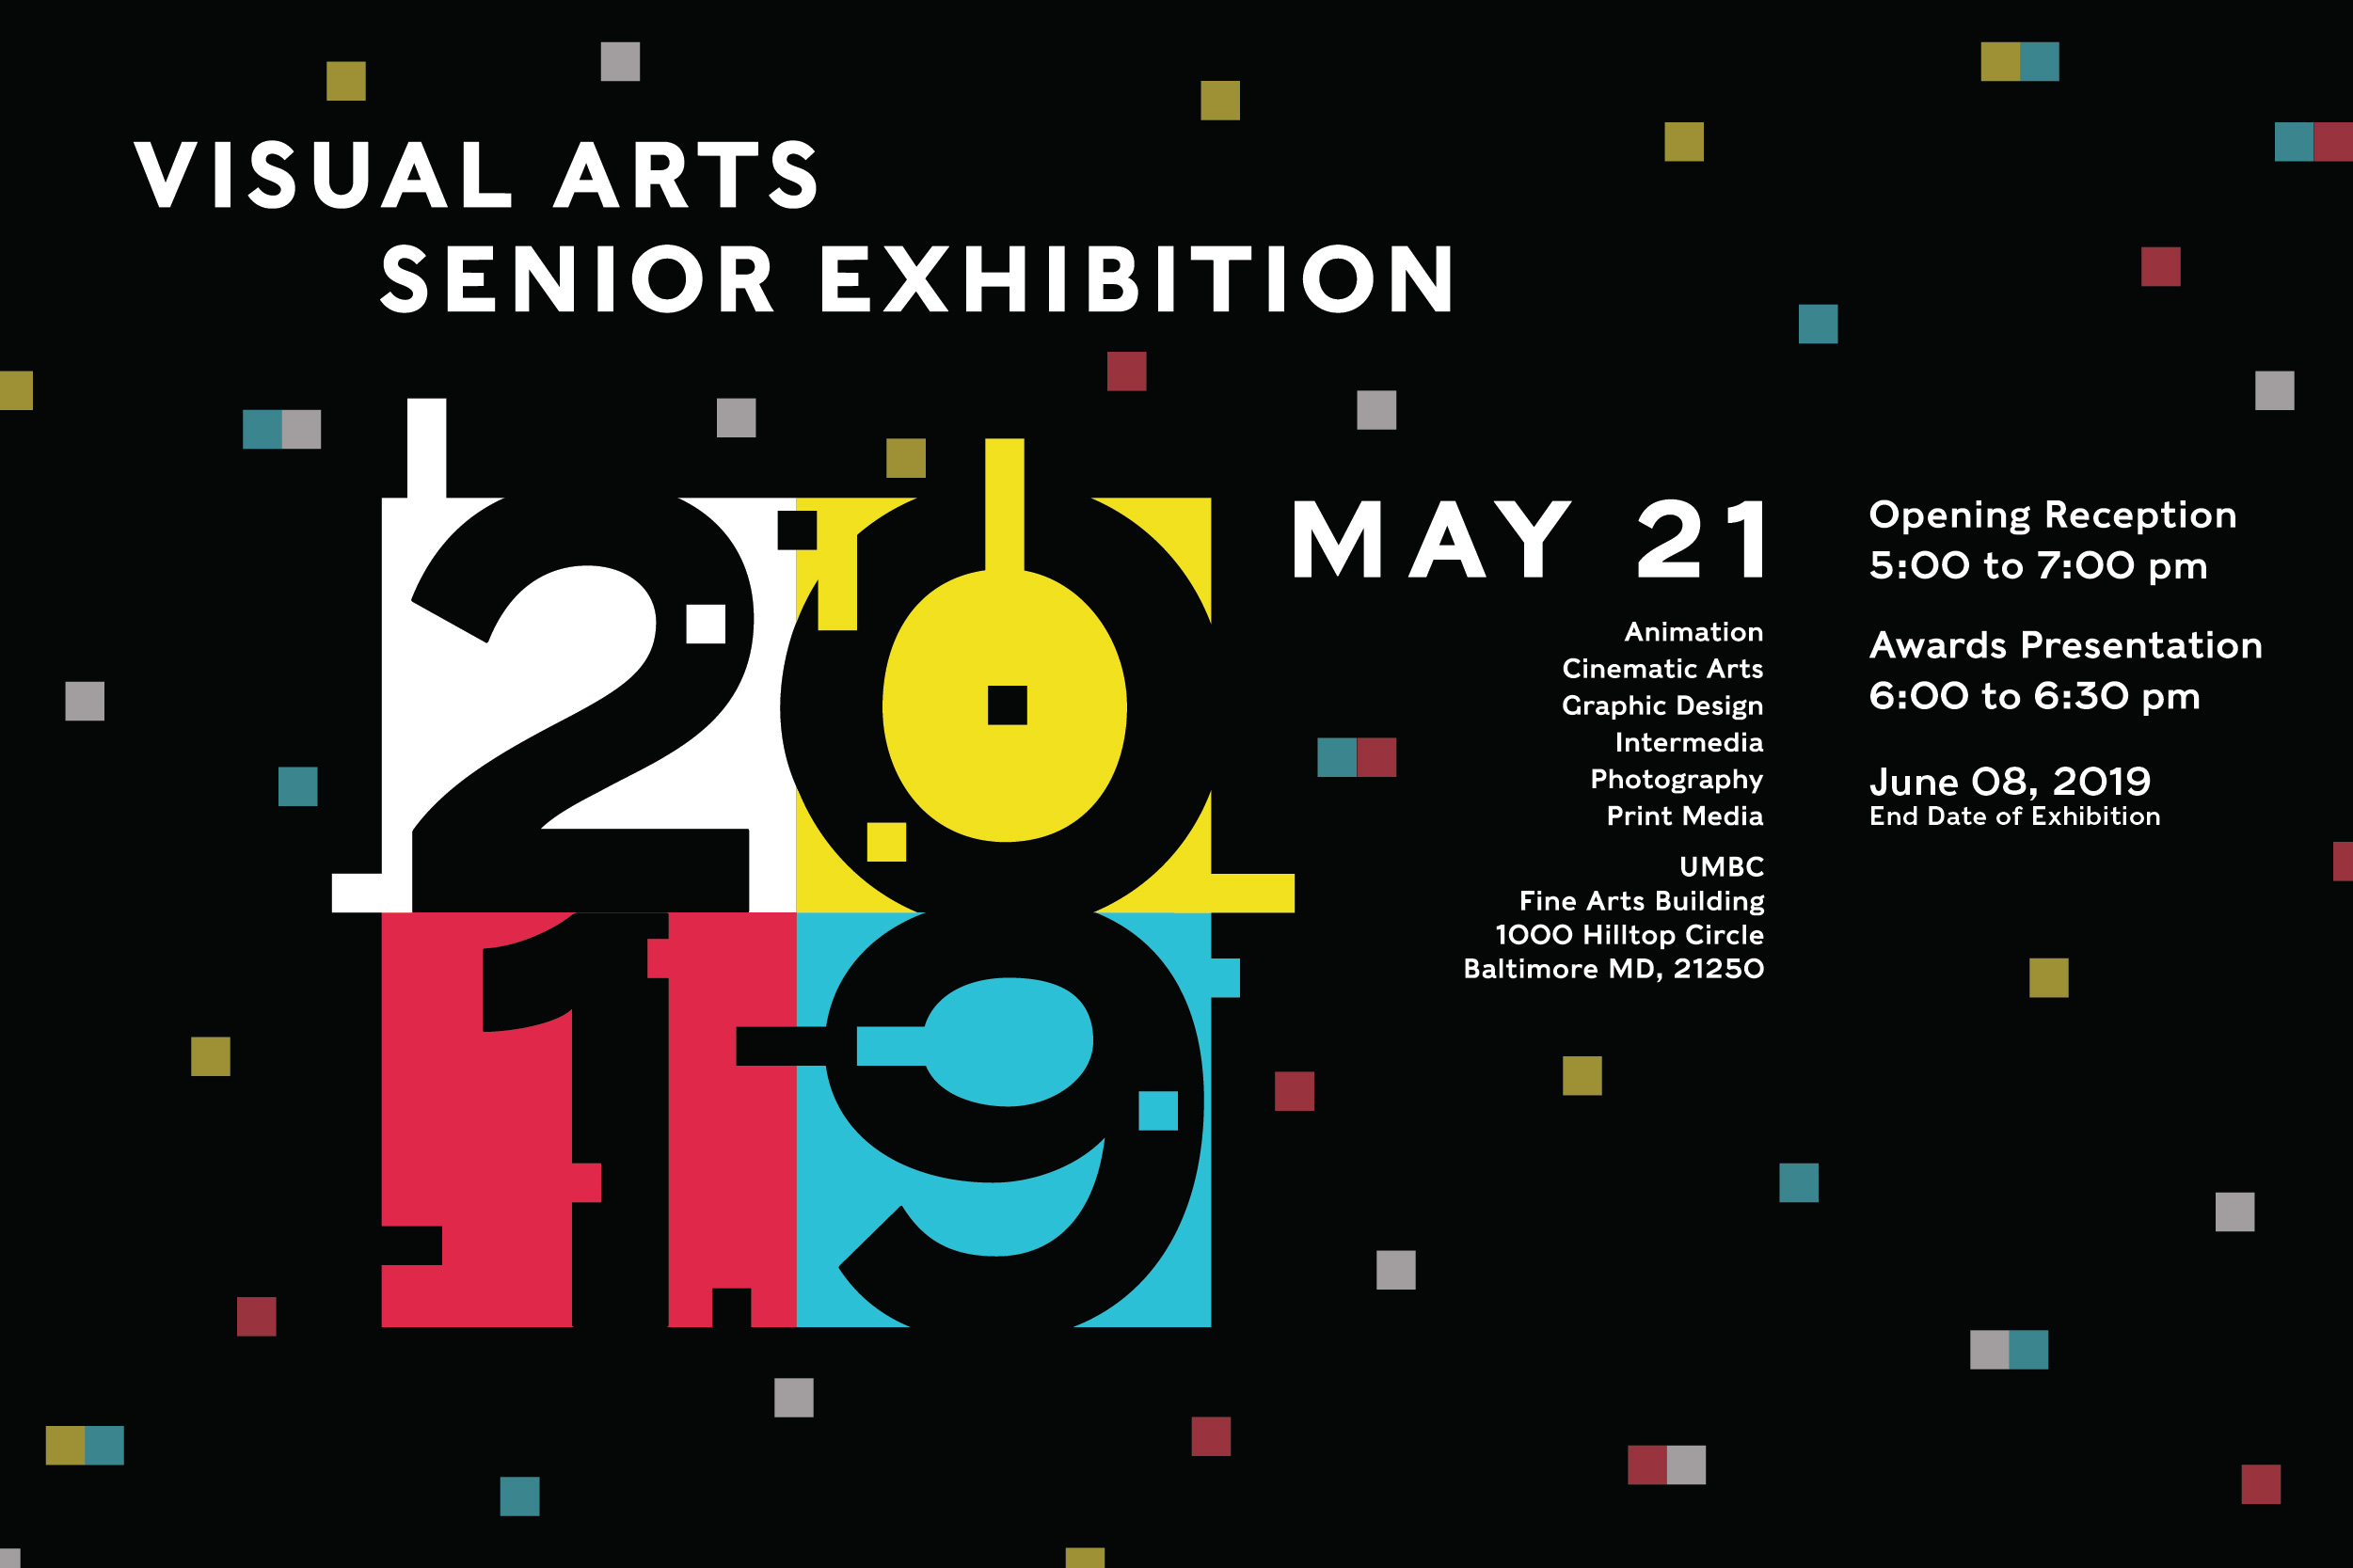 2019 Visual Arts Senior Exhibition